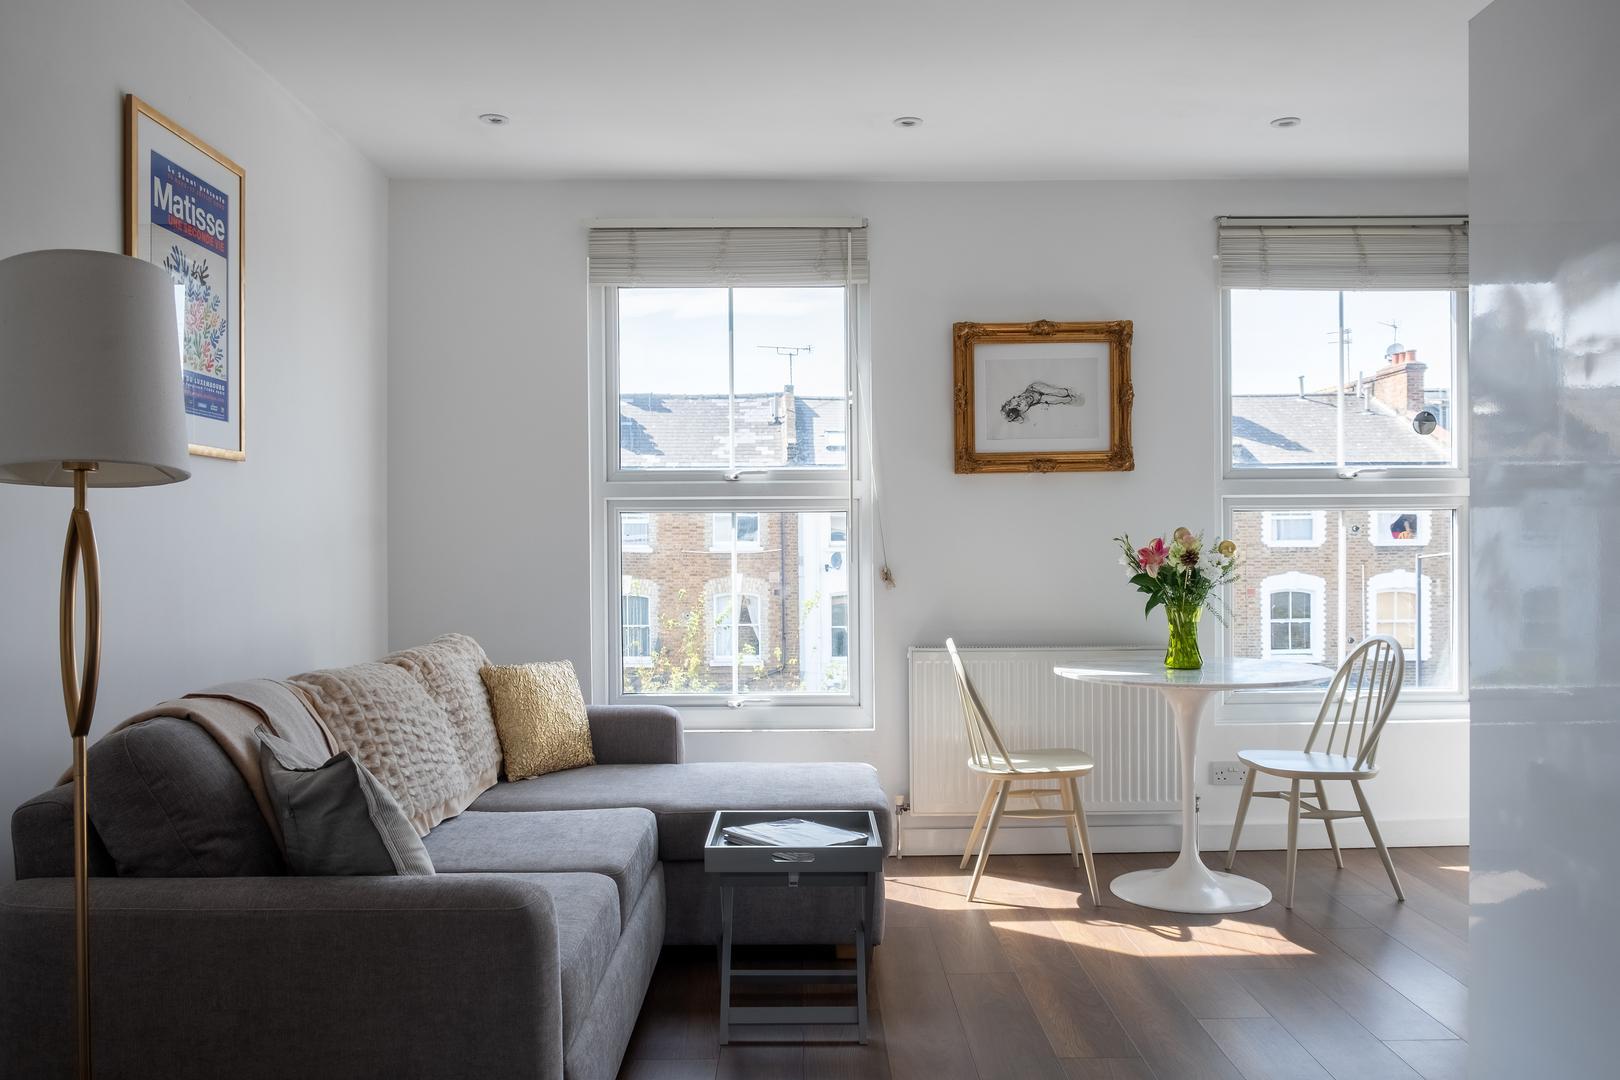 Property Image 2 - Bright Inviting Apartment in Popular Shepherd's Bush